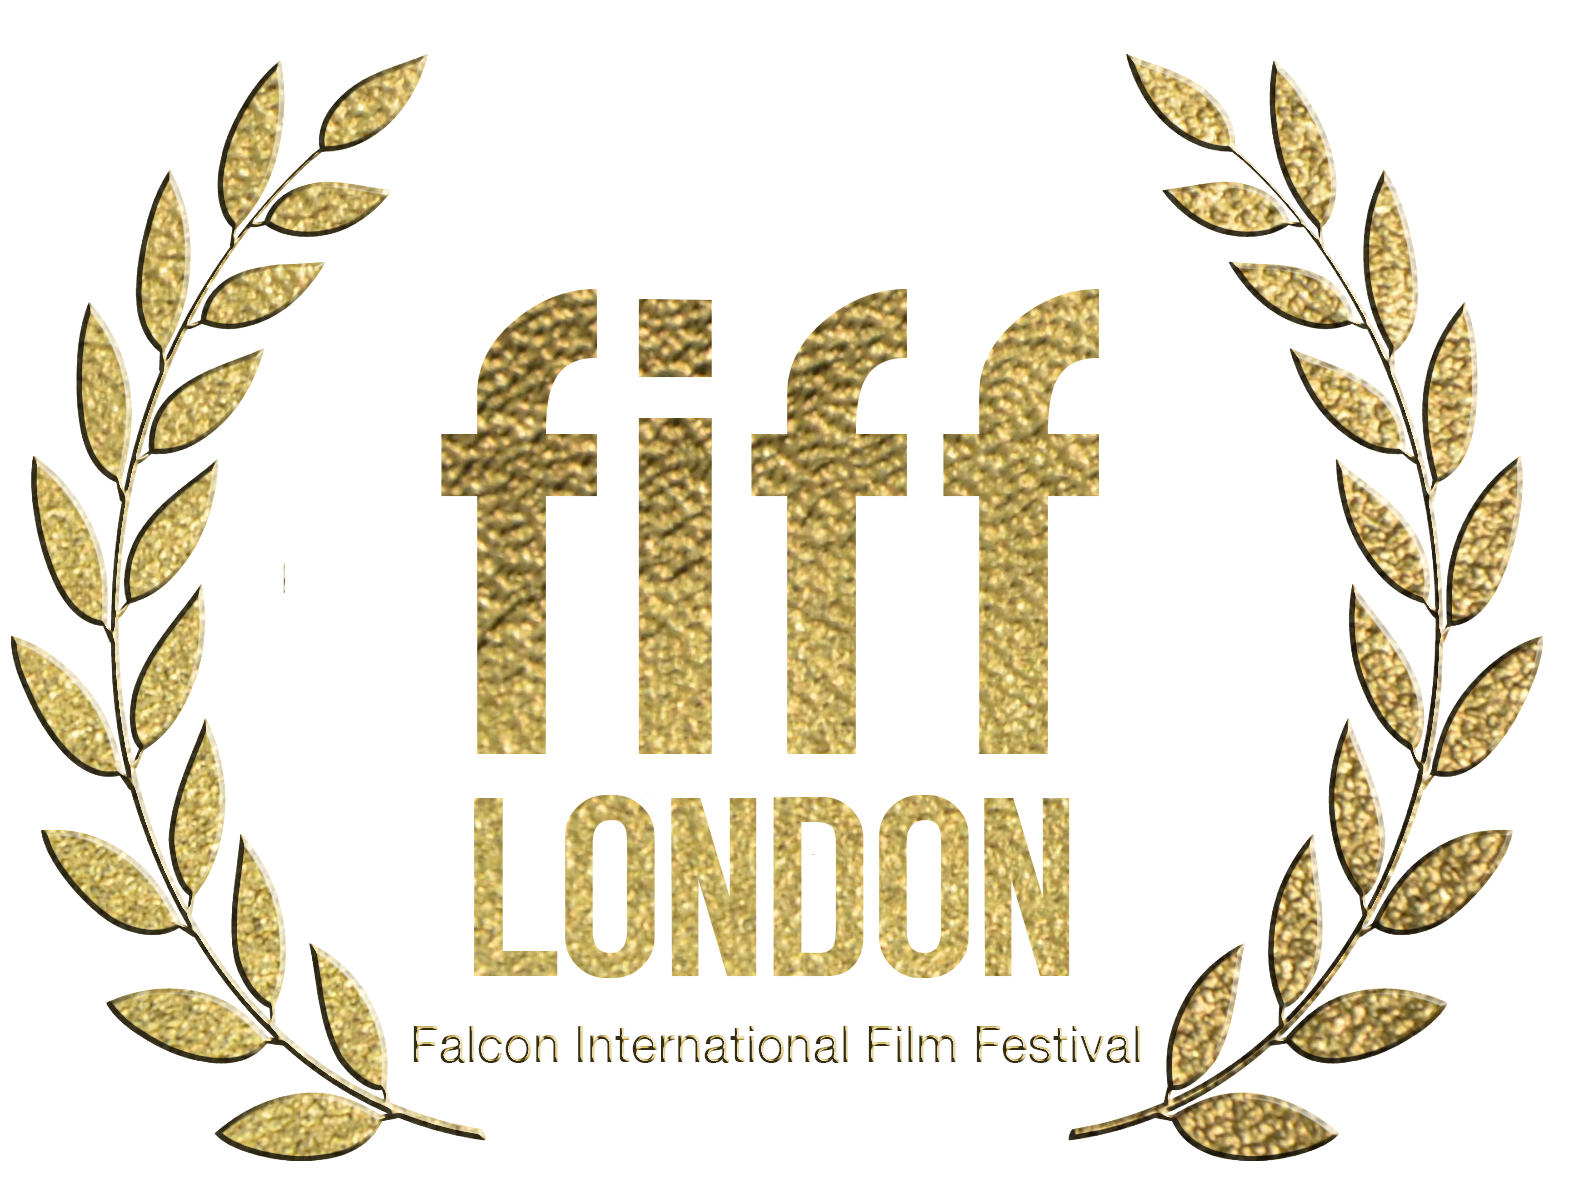 Falcon International Film Festival